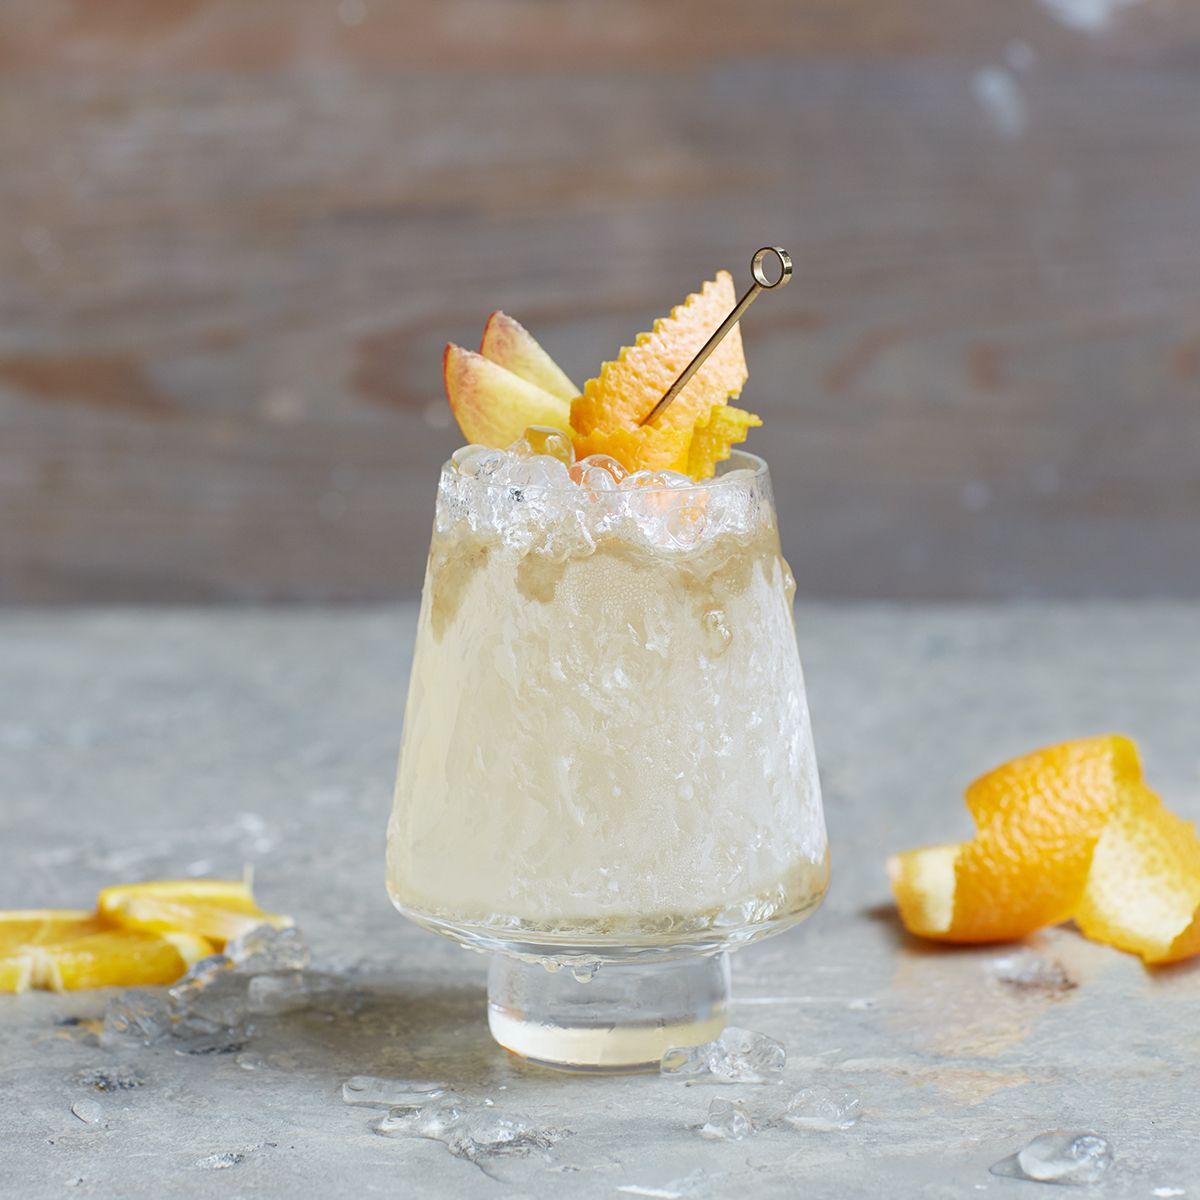 The Sherry Cobbler, a combination of sherry, sugar, oranges, berries and ice, was the US's favourite drink in the 19th century. It also apparently occasioned the invention of the straw, originally an actual piece of straw thrust deep into the ice. This modern variation was finessed by Mr Bobby Heugel of Anvil in Houston, Texas.